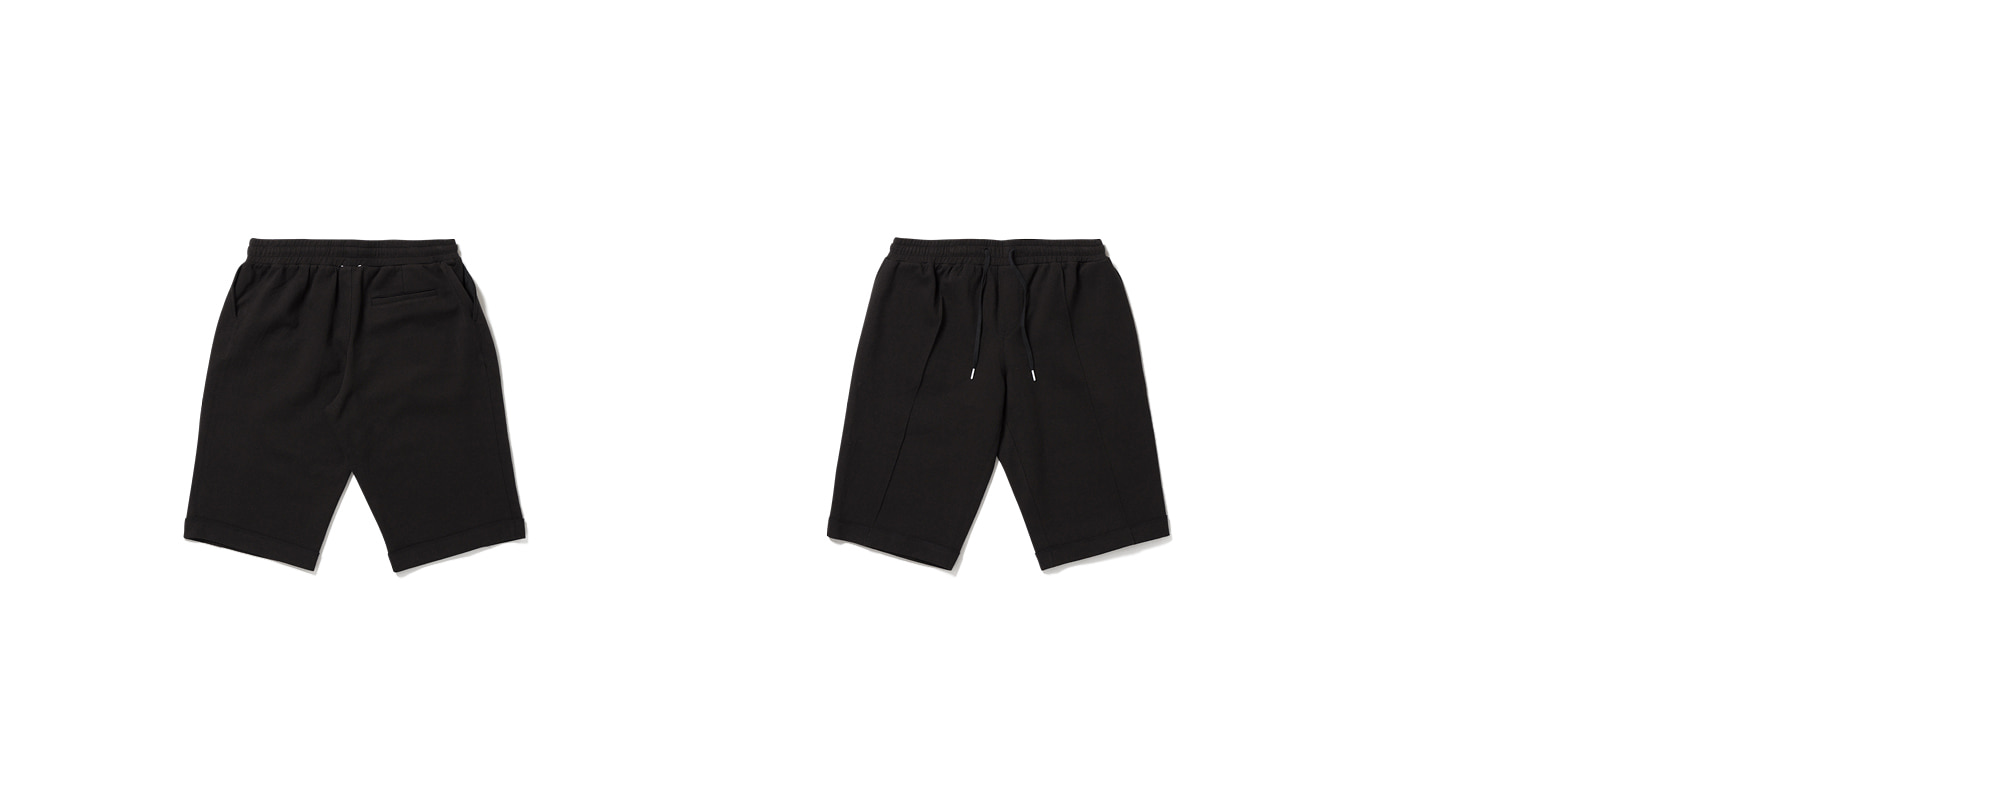 Cotton Hem Pants Black